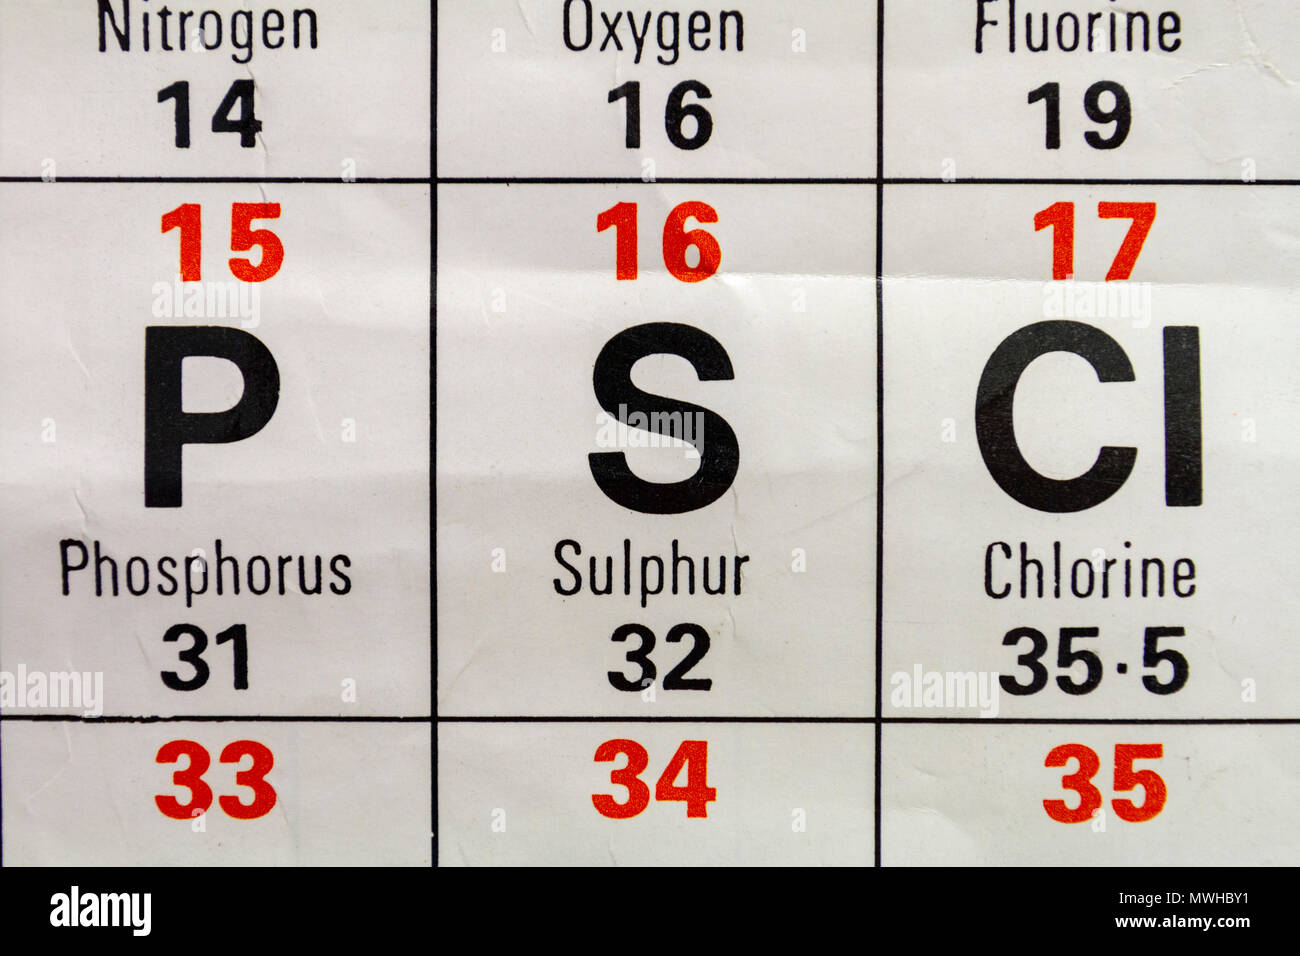 The Element Sulphur S Or Sulfur As Seen On A Periodic Table